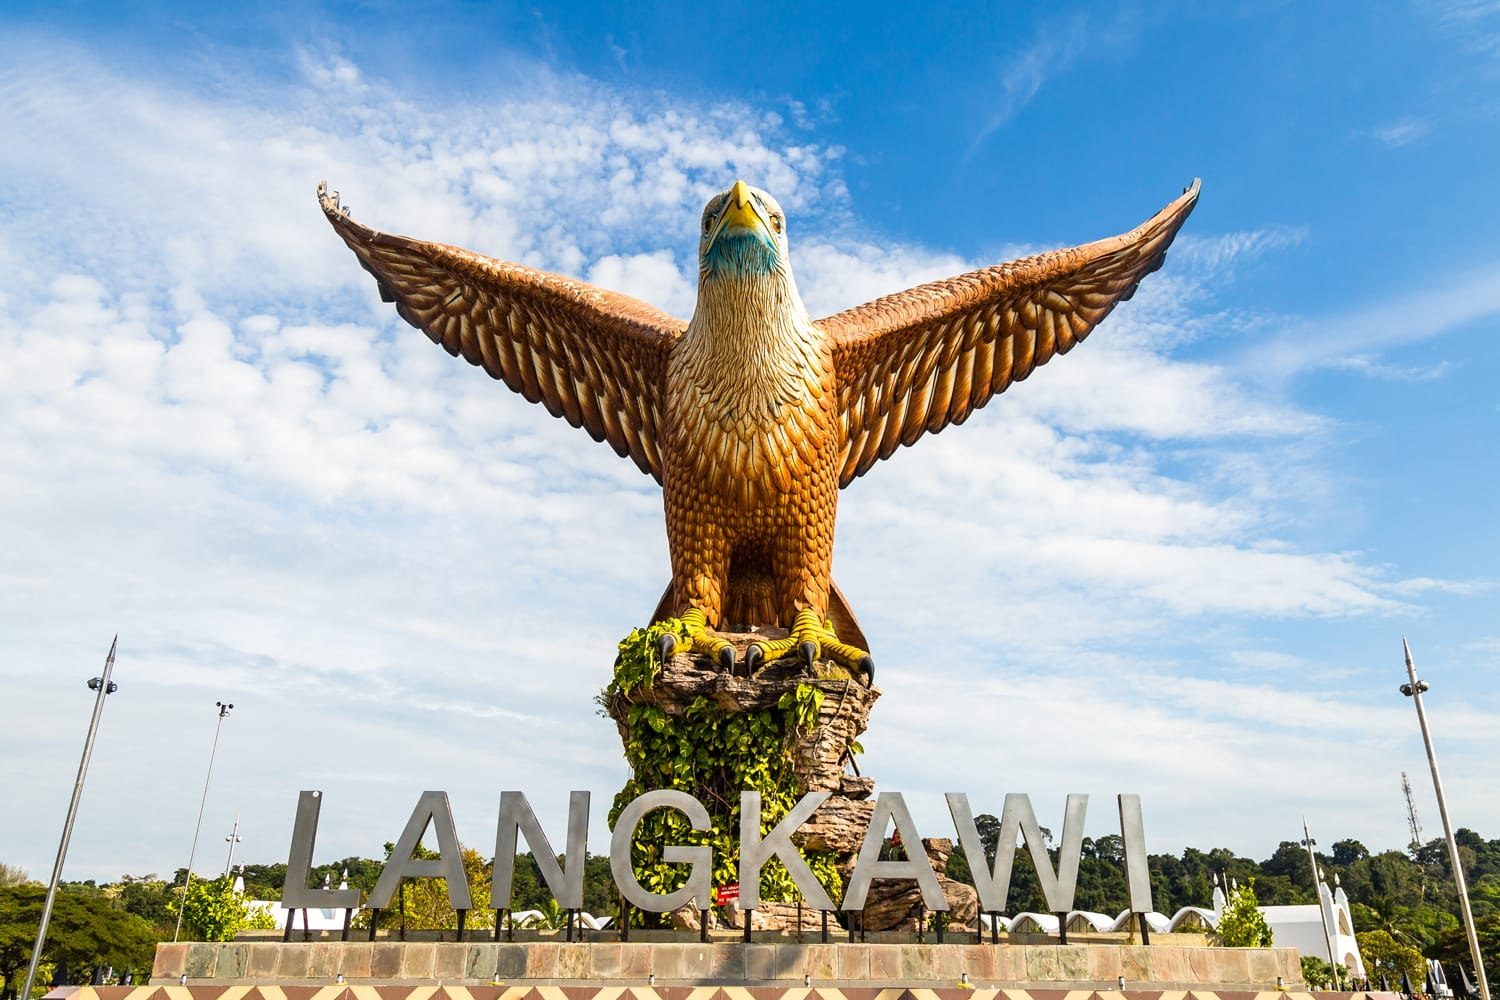 Eagle Square in Langkawi, near the Kuah port, in late afternoon light. This giant Eagle statue is the symbol of Langkawi island, Malaysia